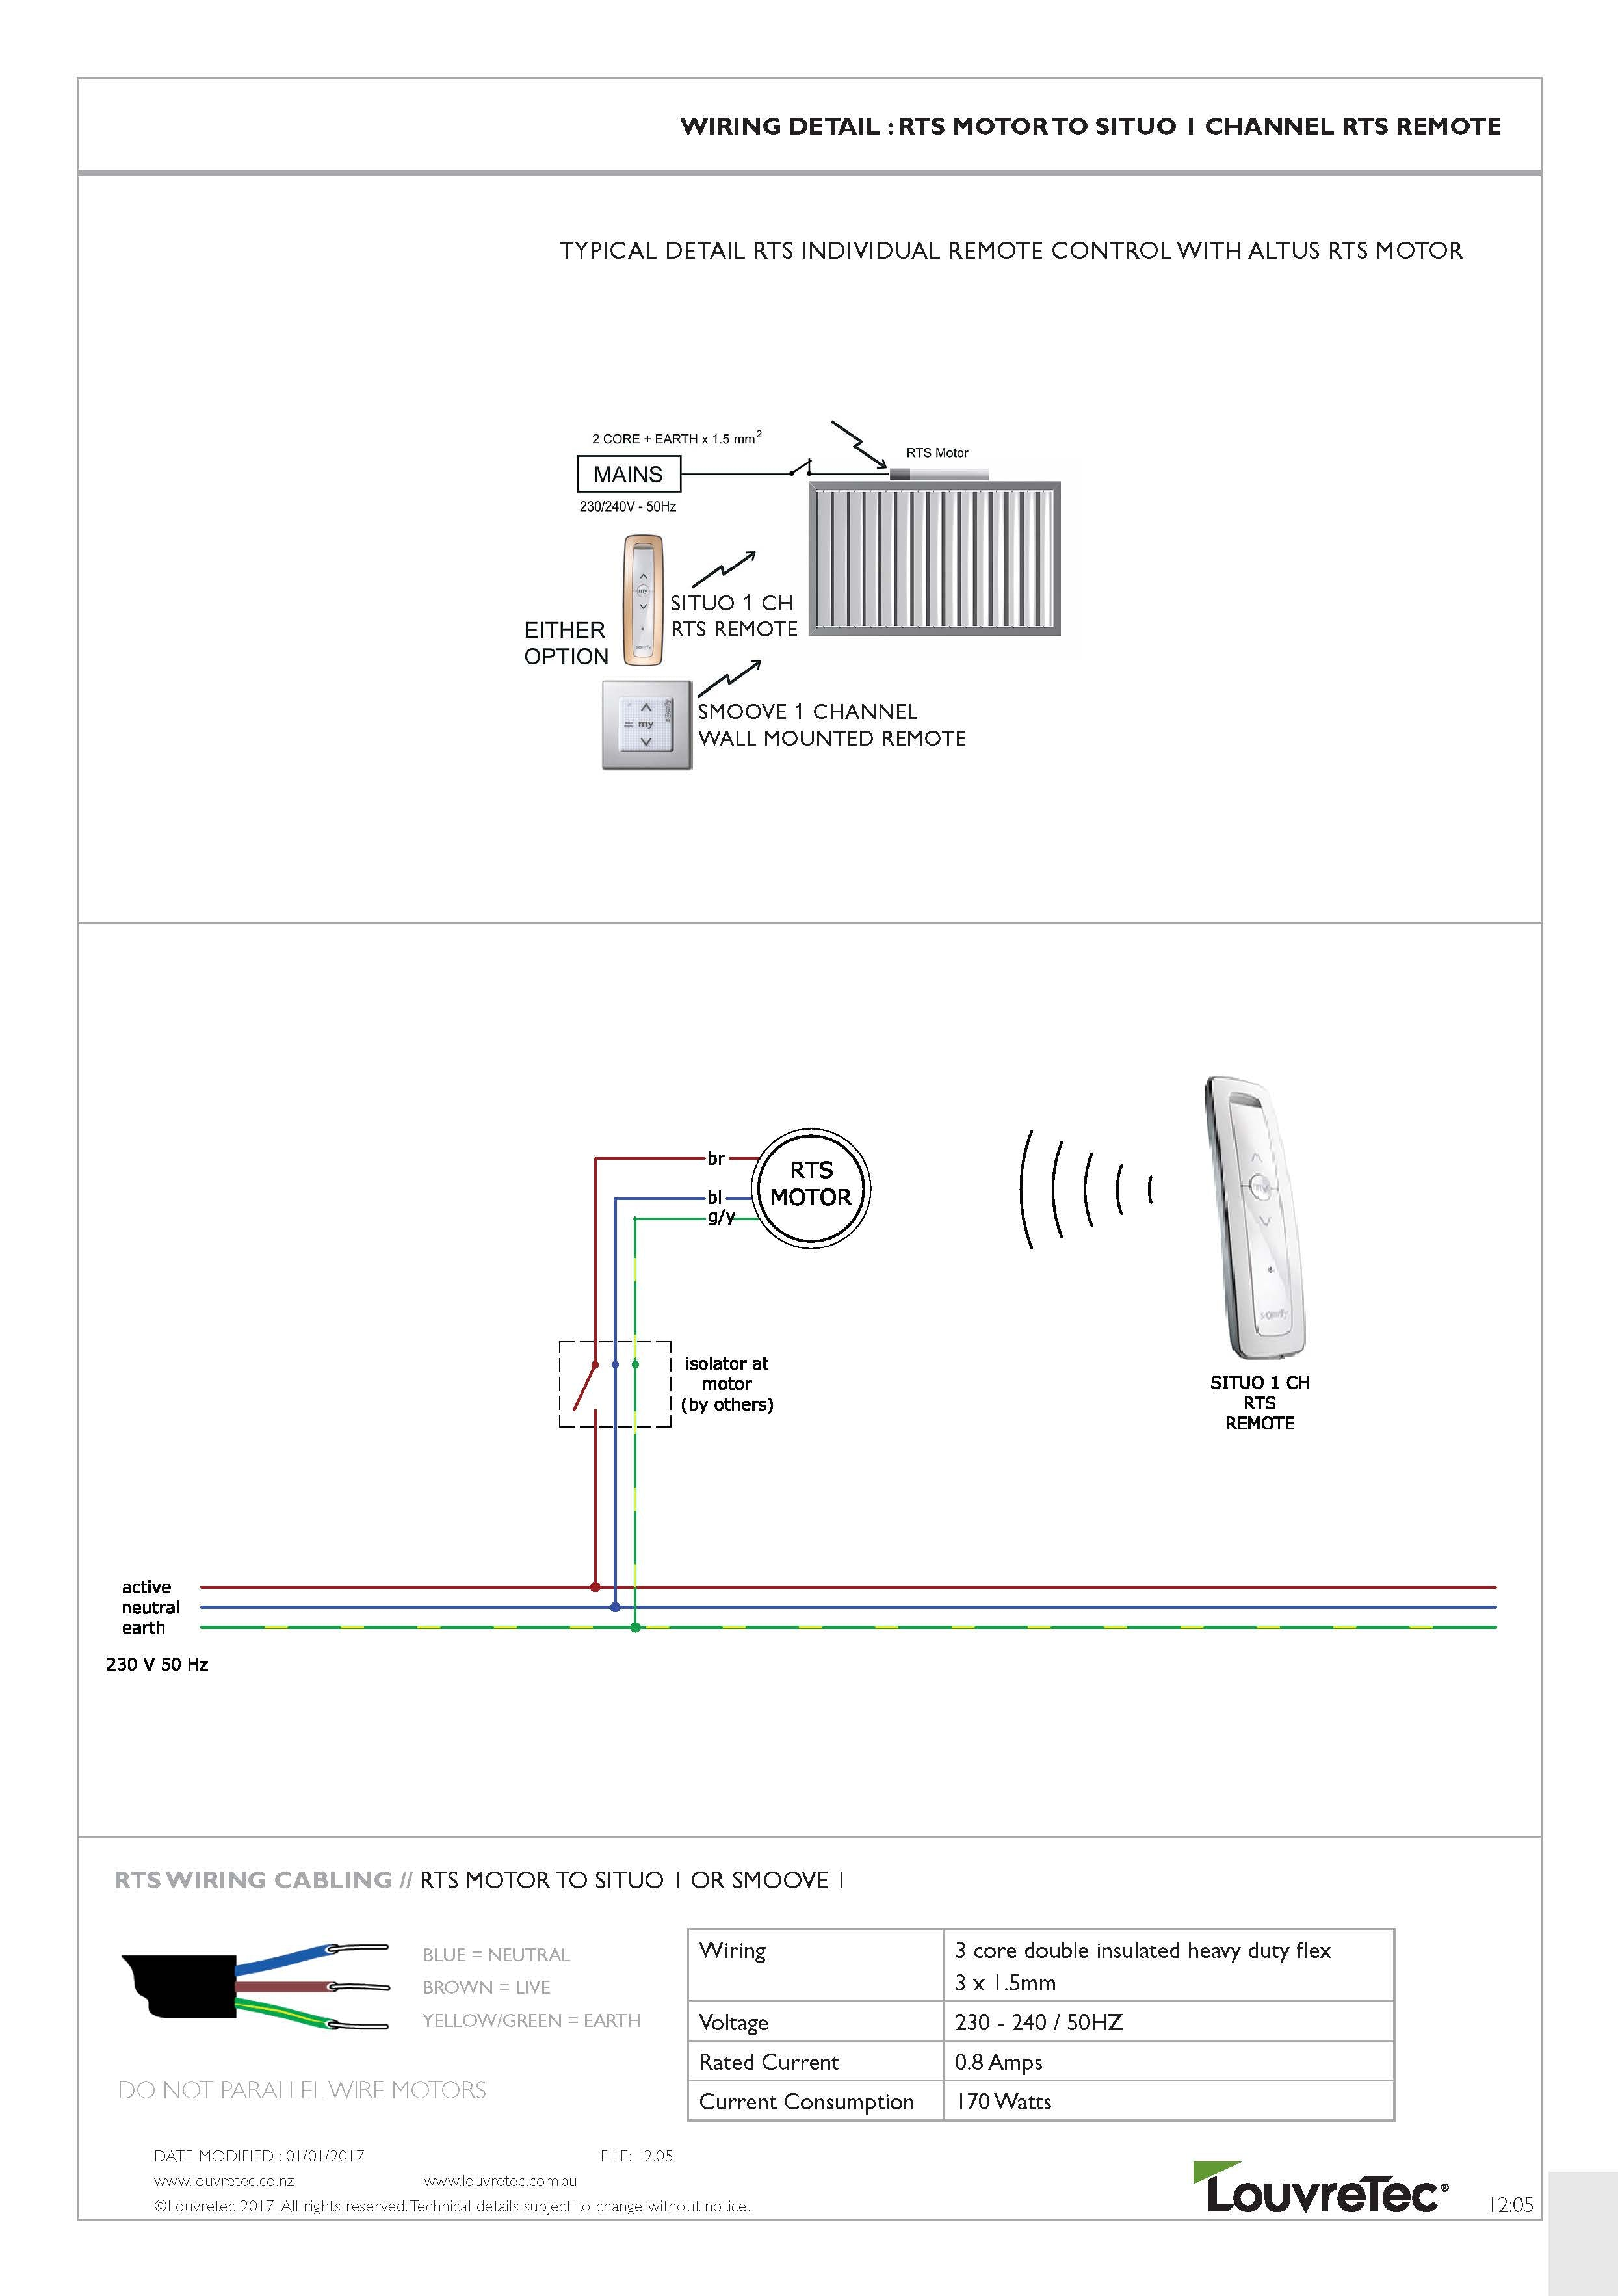 12.05_2a065827 1336 4df7 b4c6 6d023d8265aa?v=1502702065 technical wiring diagrams louvretec somfy rts motor wiring diagram at fashall.co